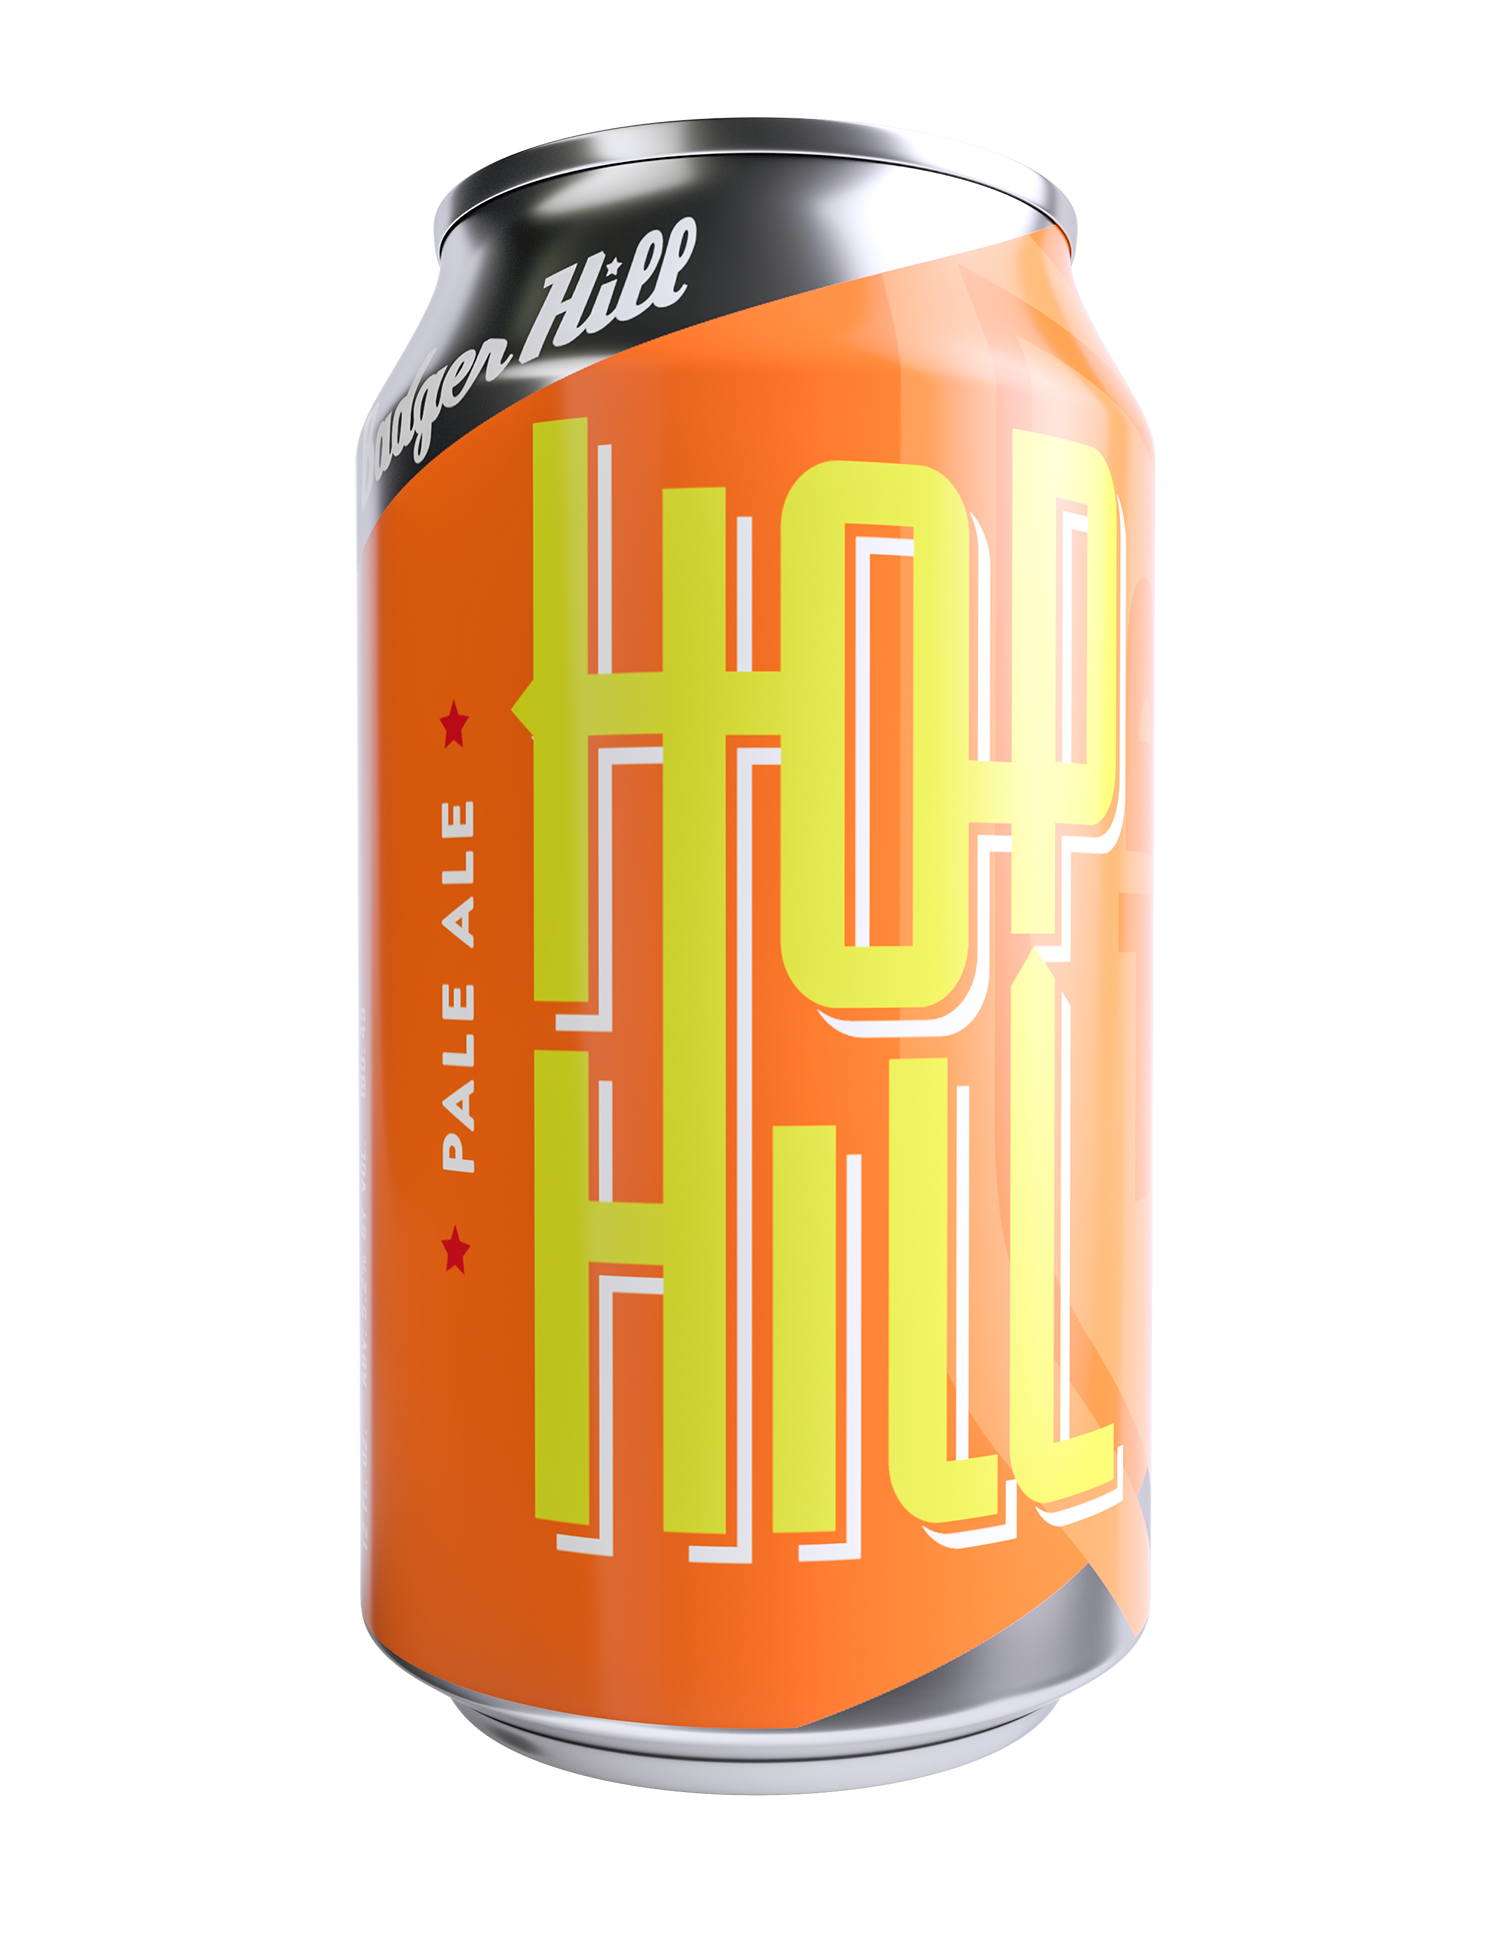 Hop Hill Pale AlE - 5.3 % ABV * 40 IBUHop Hill tastes like courage. It tastes like a satisfying click on a Cat-5 cable or a perfectly hit golf ball. It has the aroma of hope, rebellion and stability. It's clear, like vision or like glacial ice. On a more serious note- Hop Hill is the perfect pale ale. Notes of grapefruit, crisp bitterness, easy drinking with just enough body and bitterness to create a satisfying finish and flavor.AVAILABLE: Draft and 6-Packs